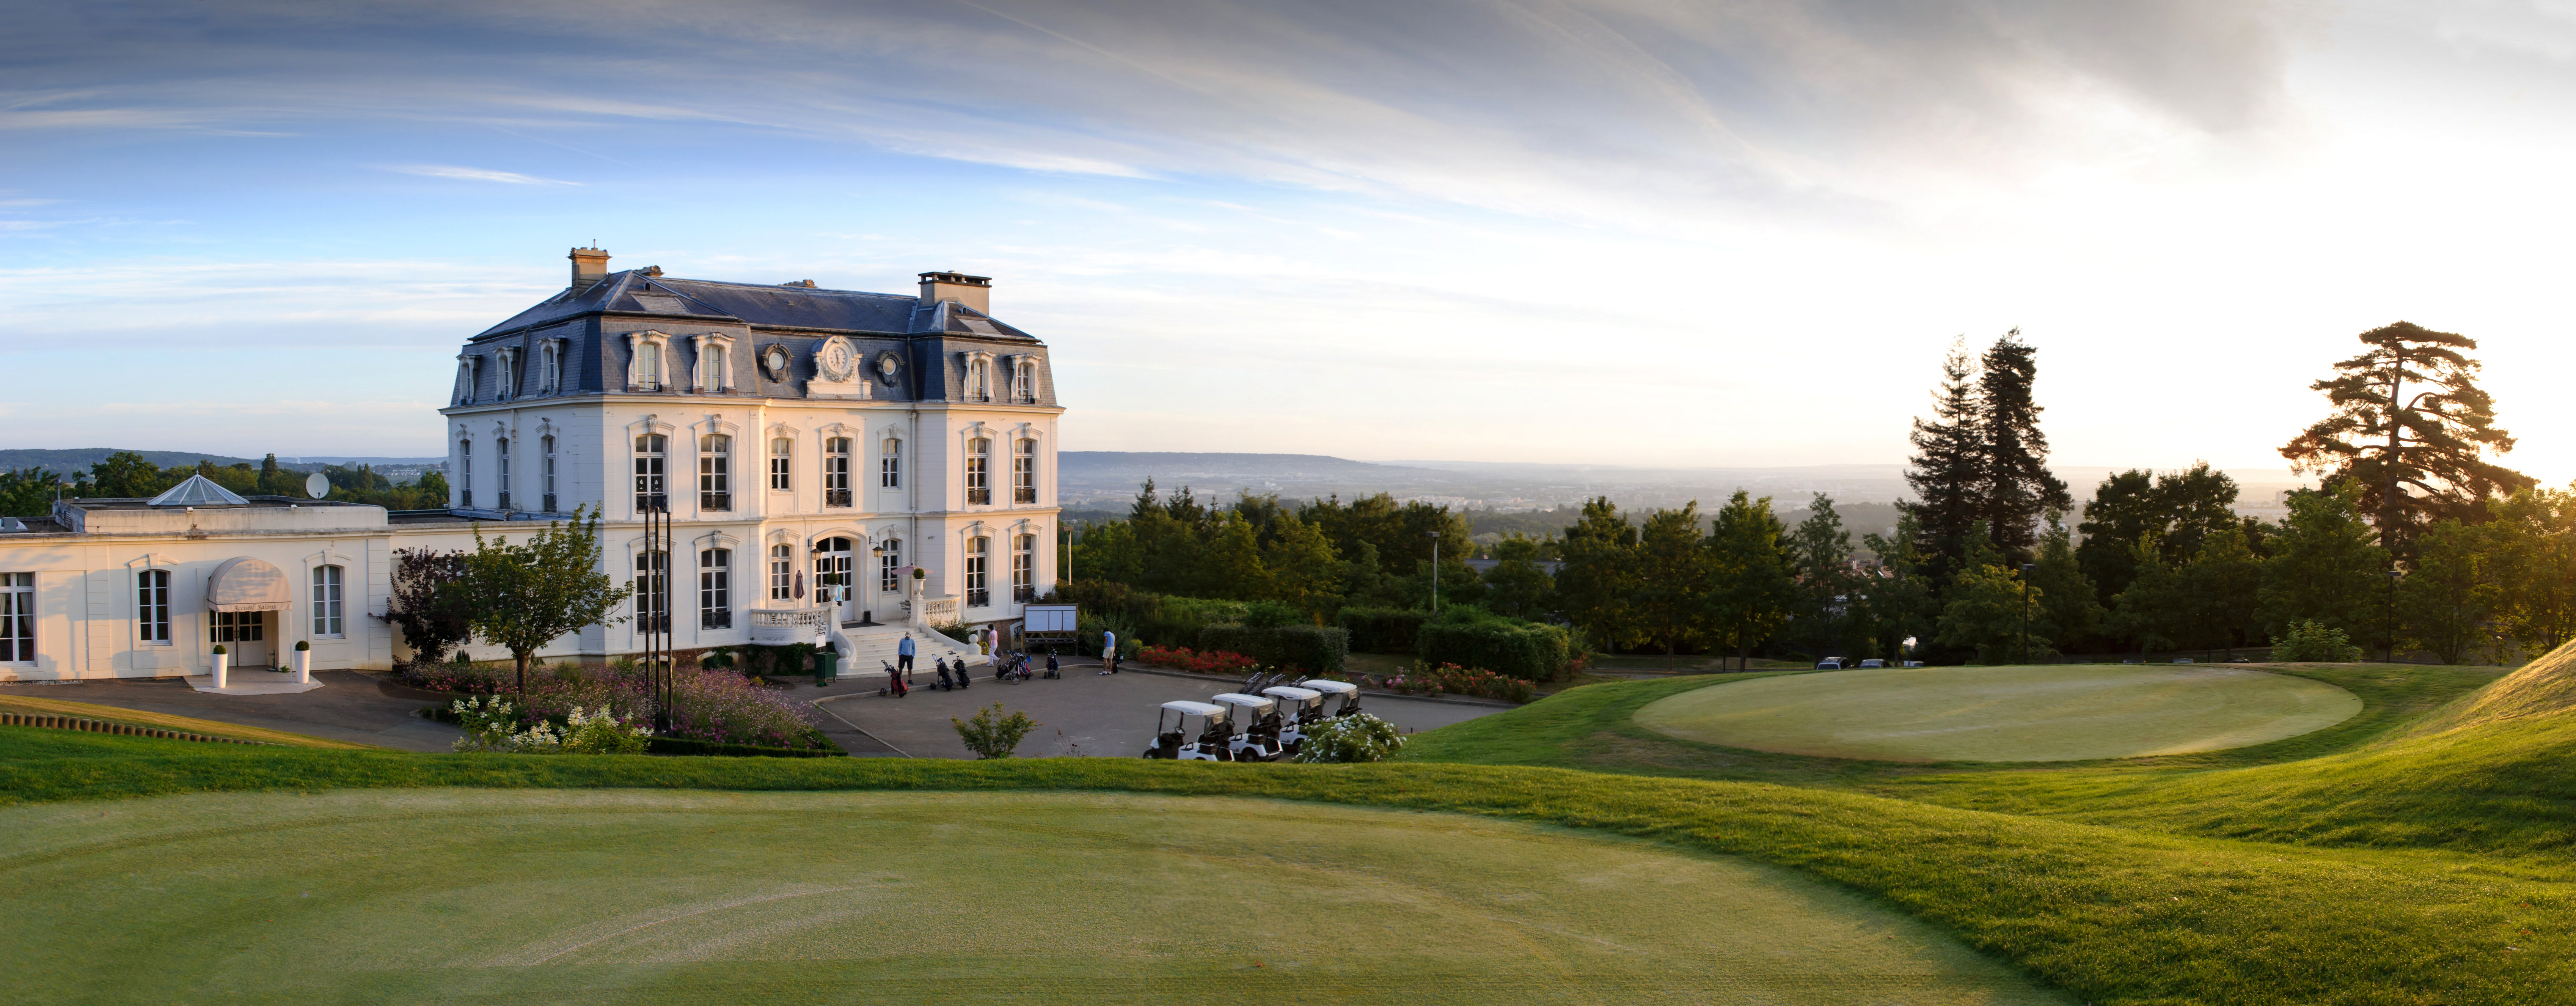 Overview of golf course named Exclusiv Golf de Bethemont